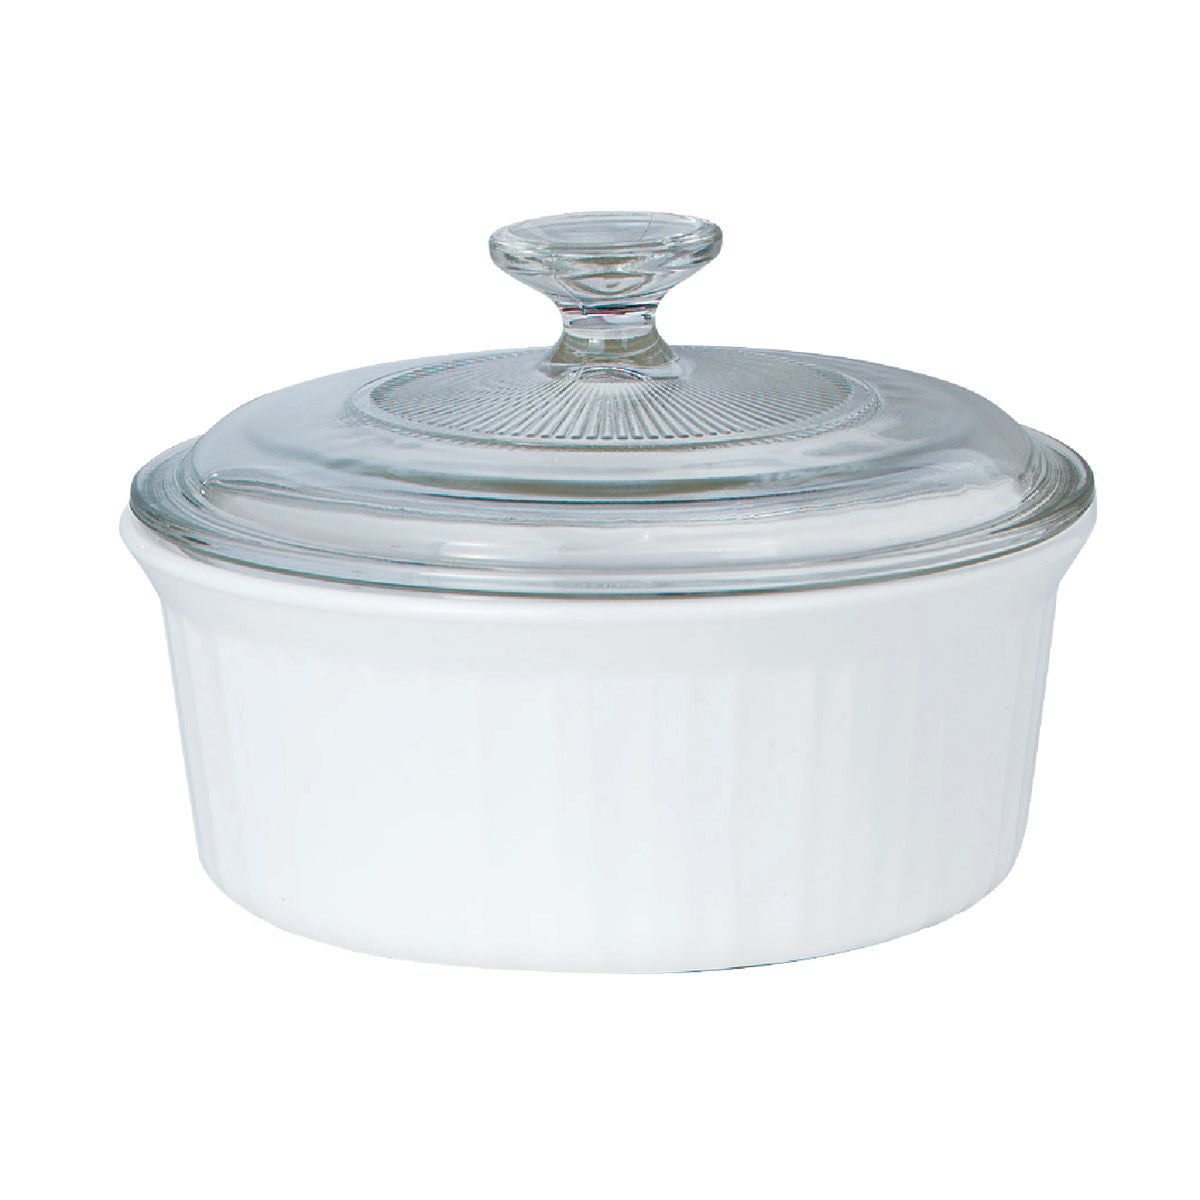 ROUND COVERED CASSEROLE - 1085594 by World Kitchen  Ekco